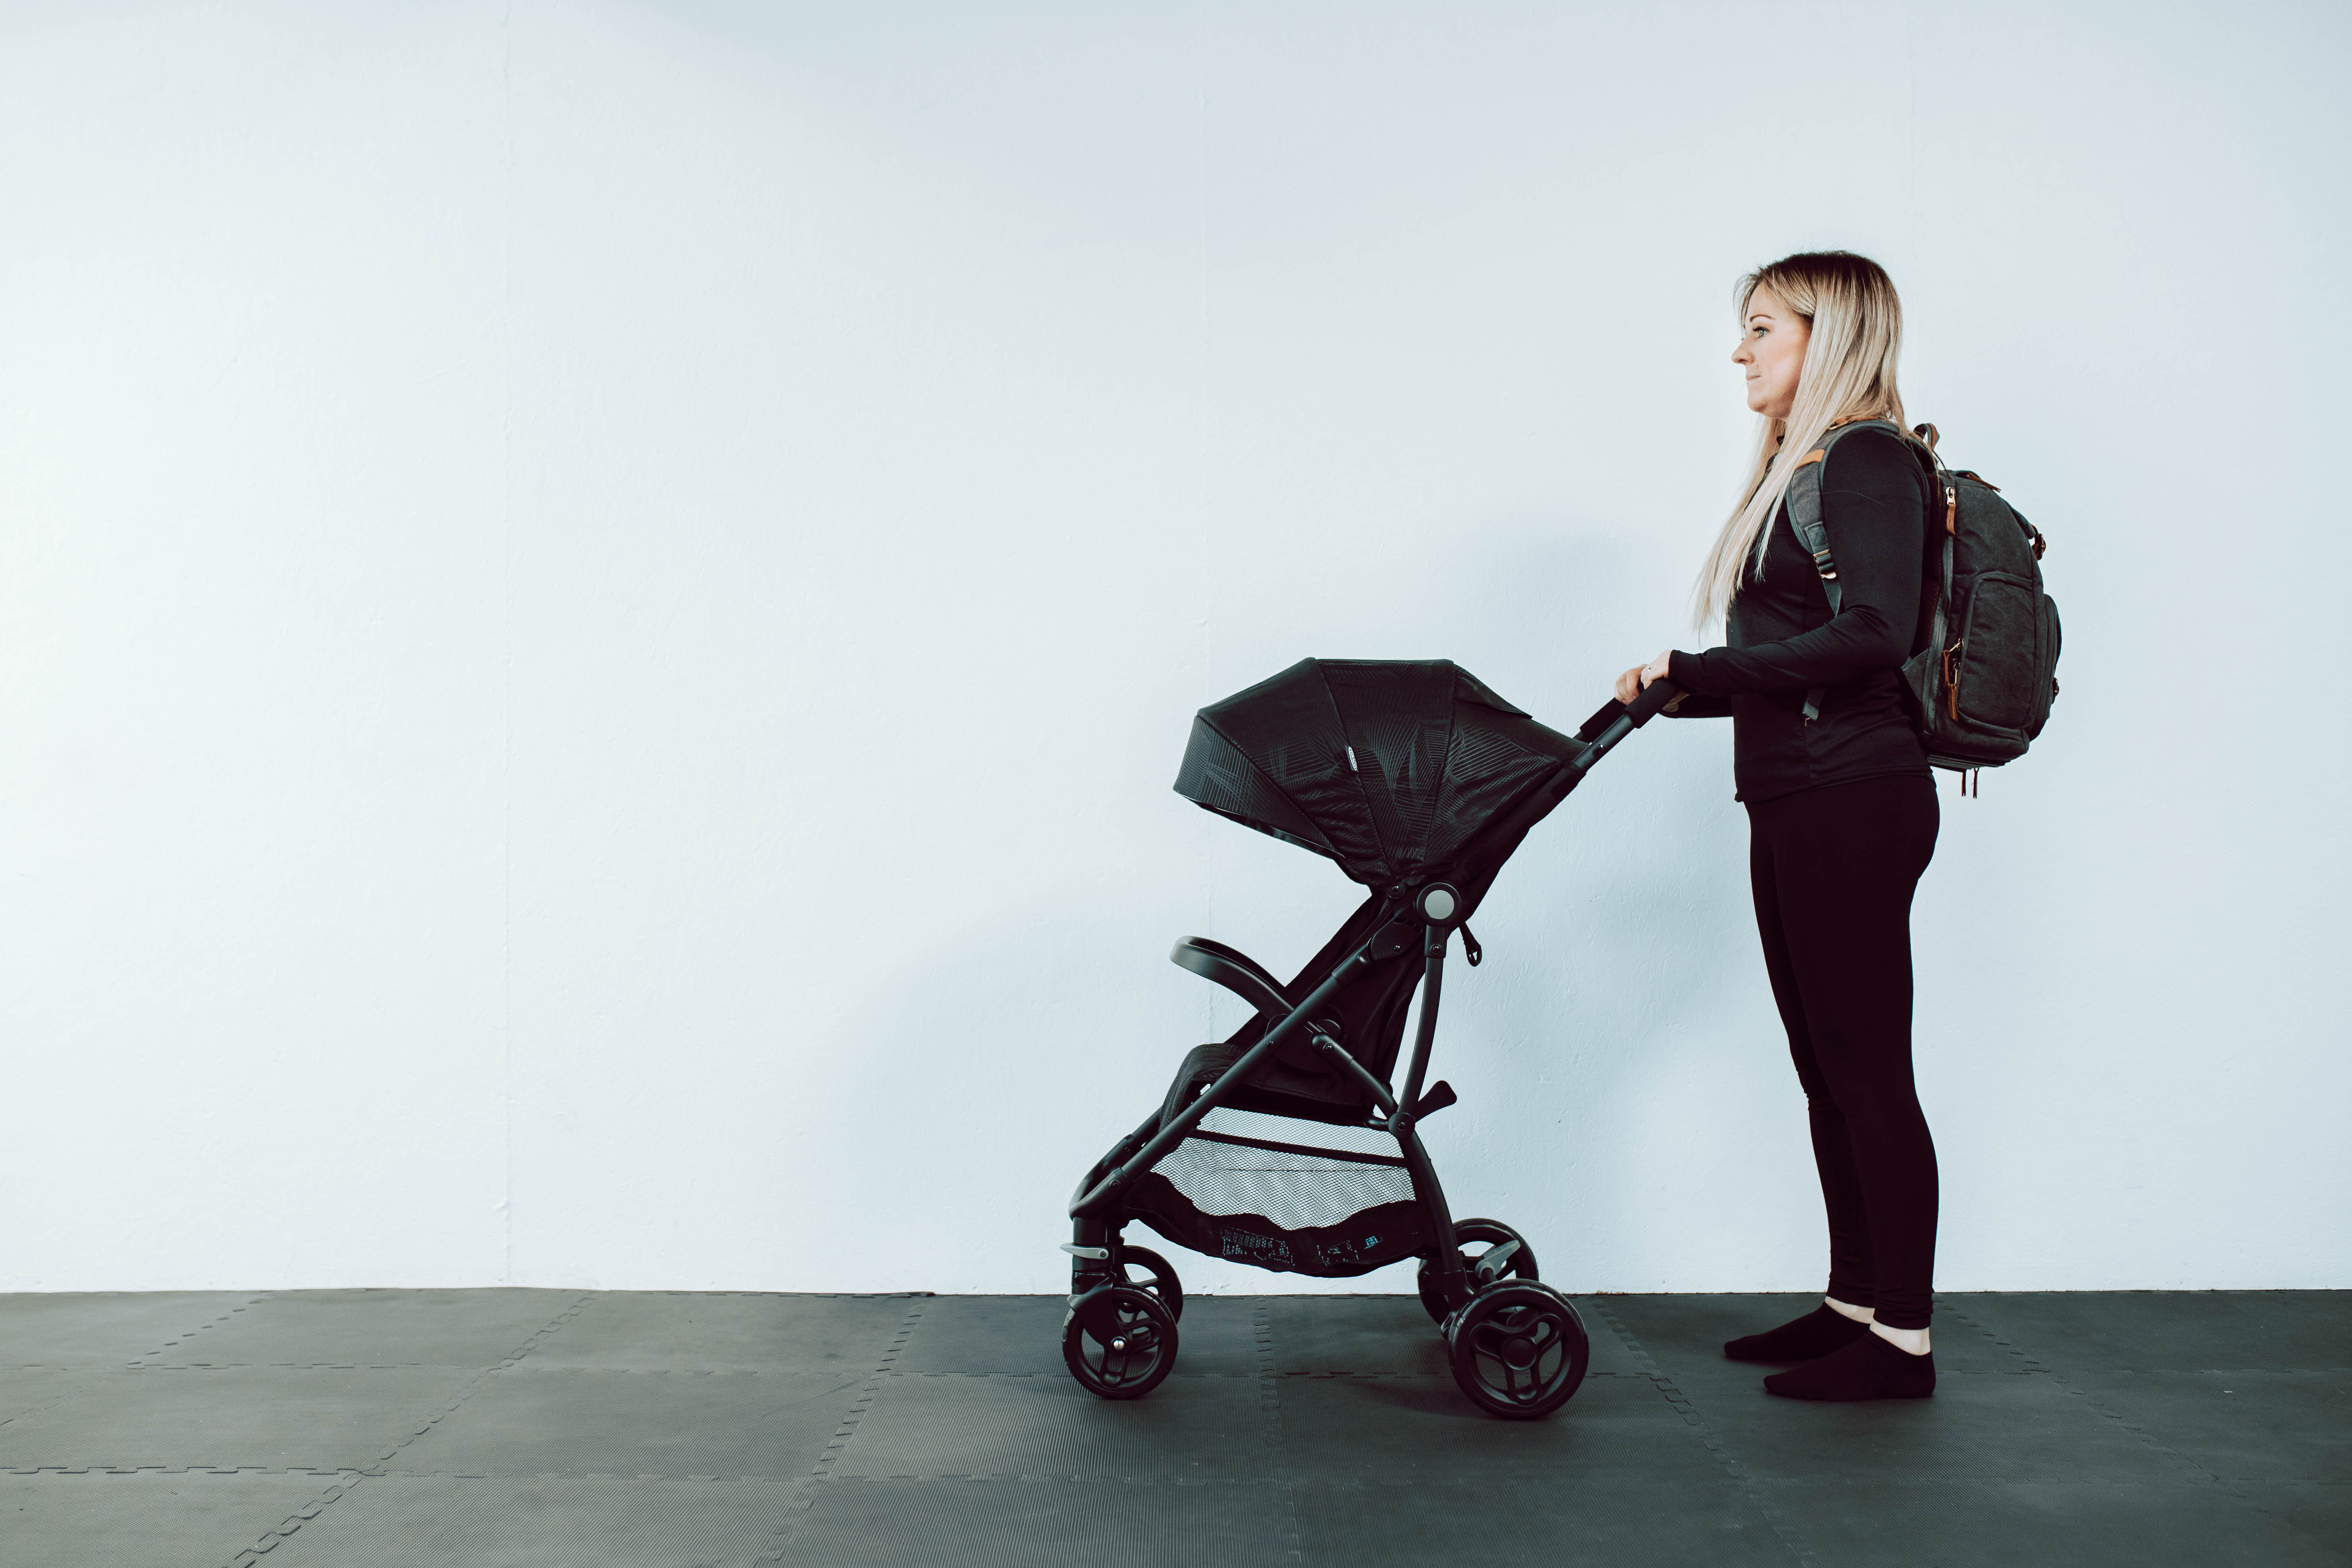 Mother with good pushchair posture